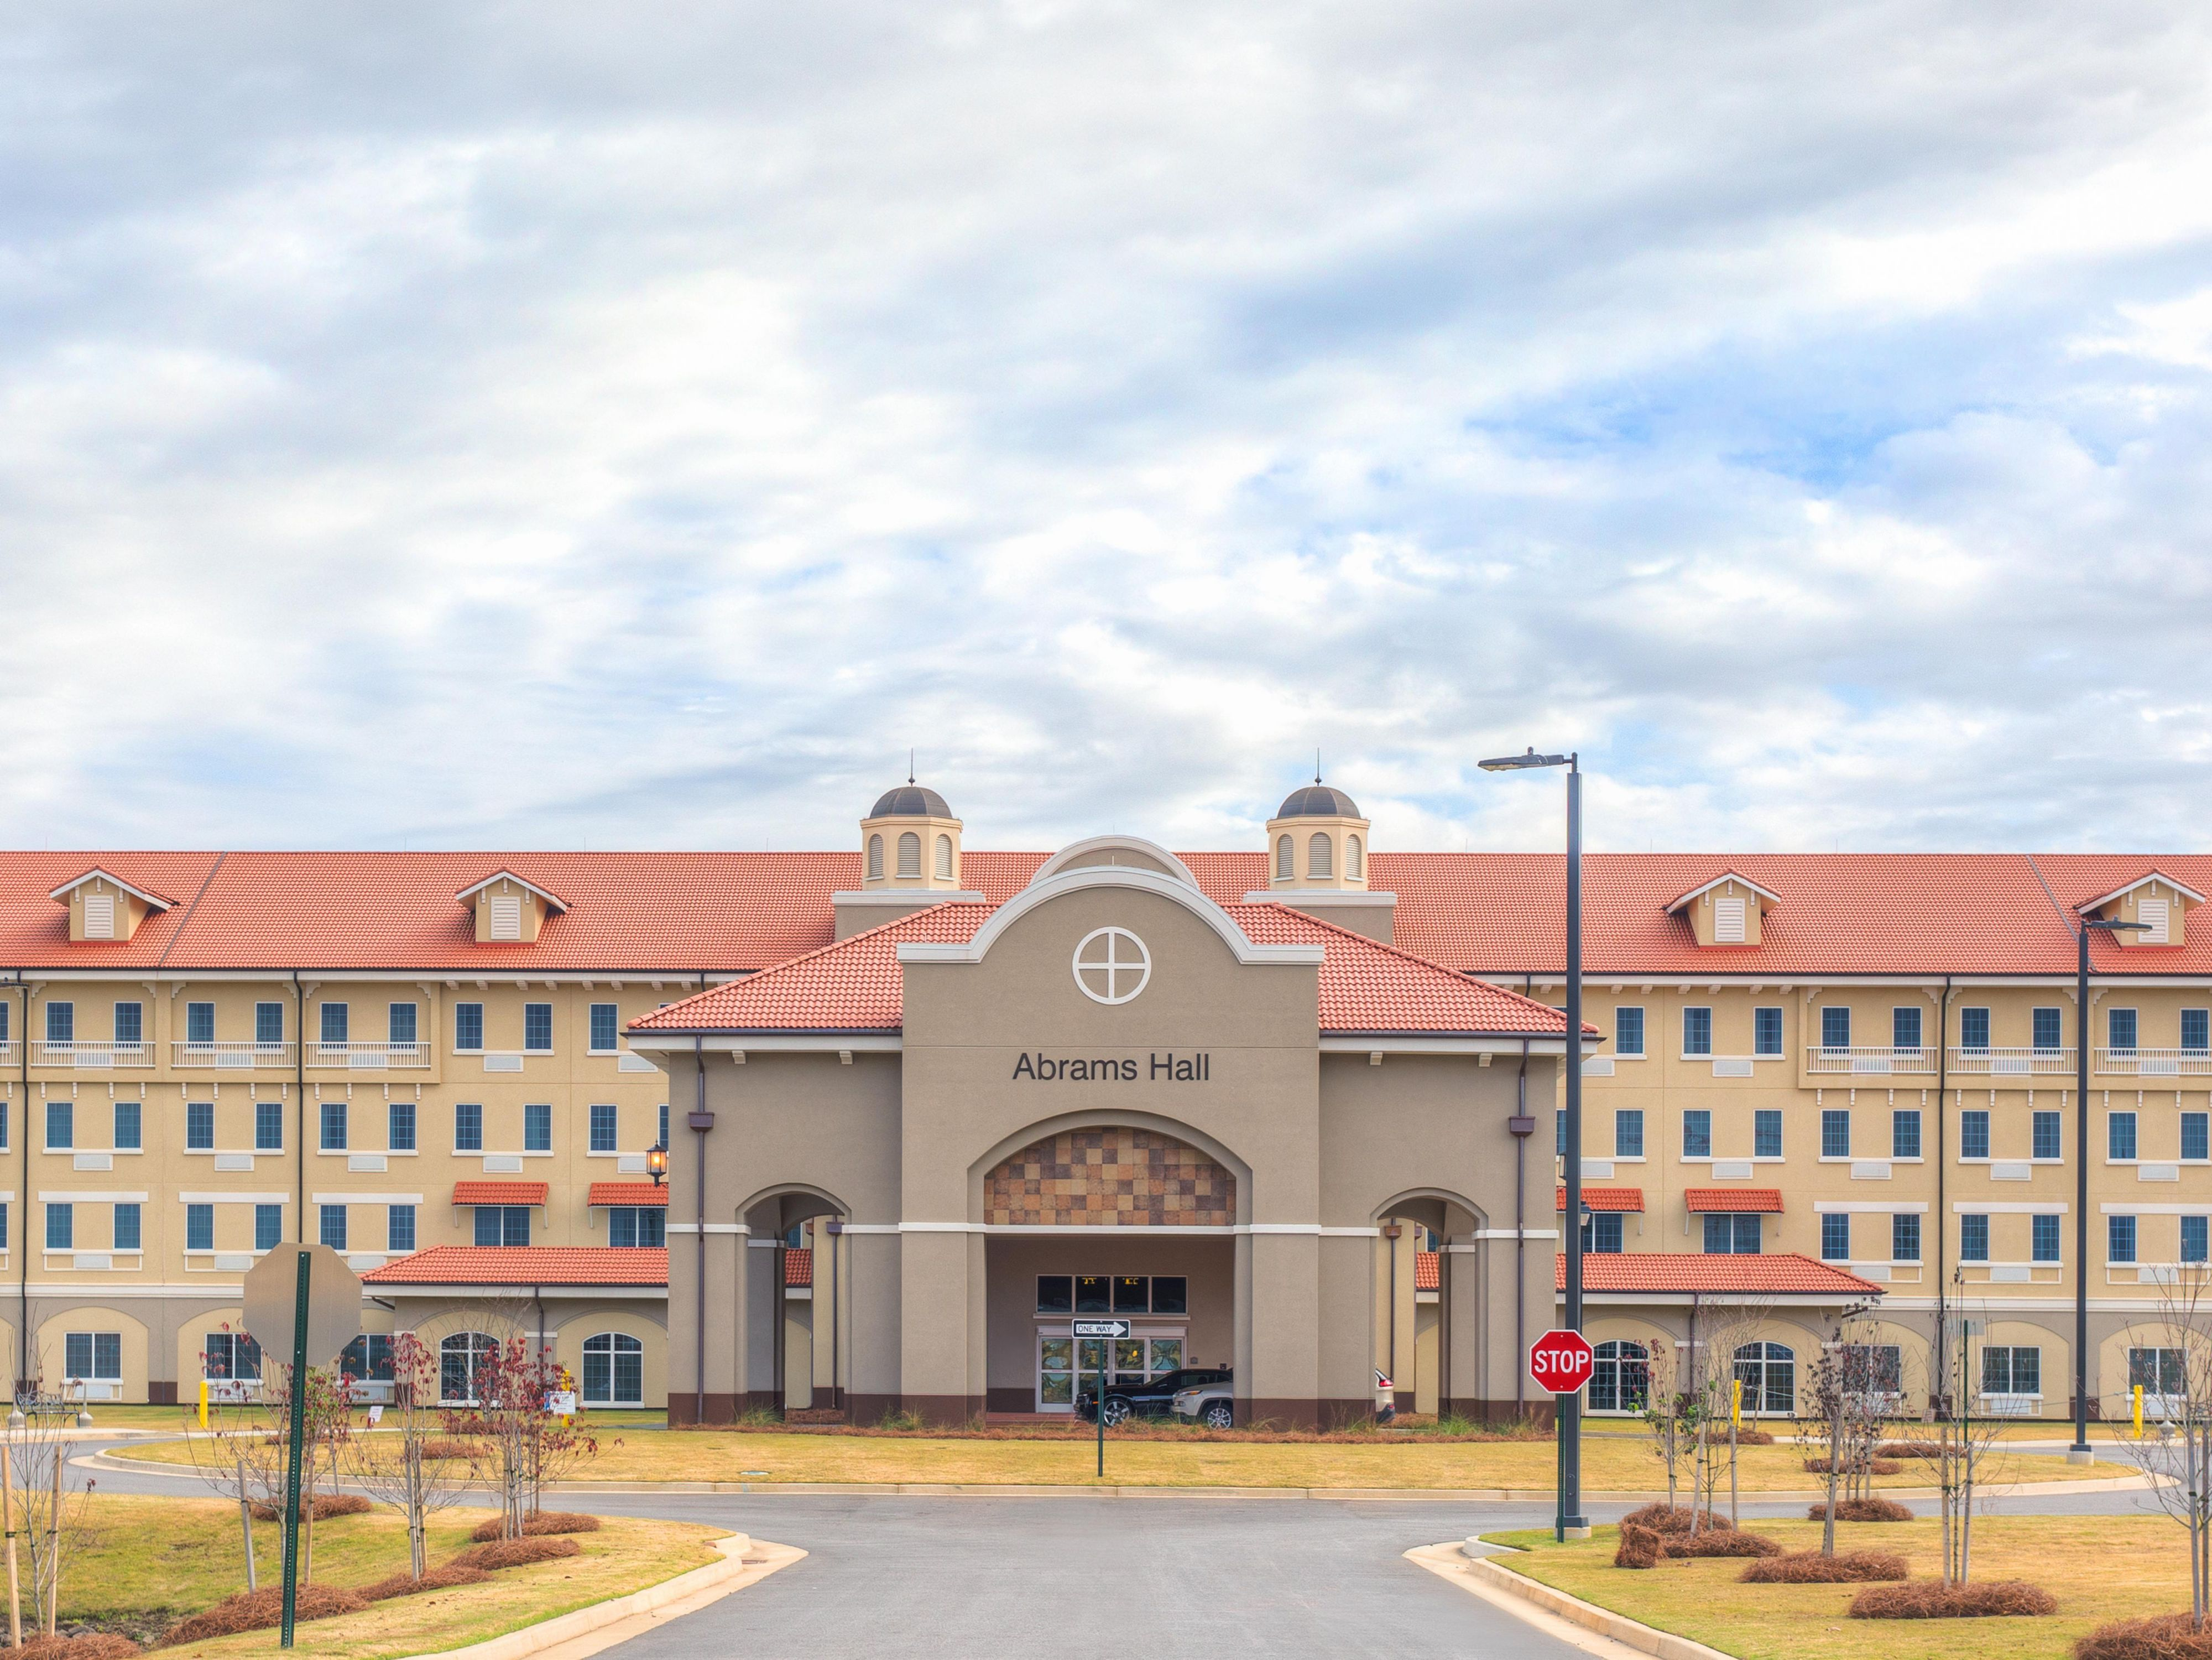 Ihg Army Hotels Abrams Hall On Fort Benning